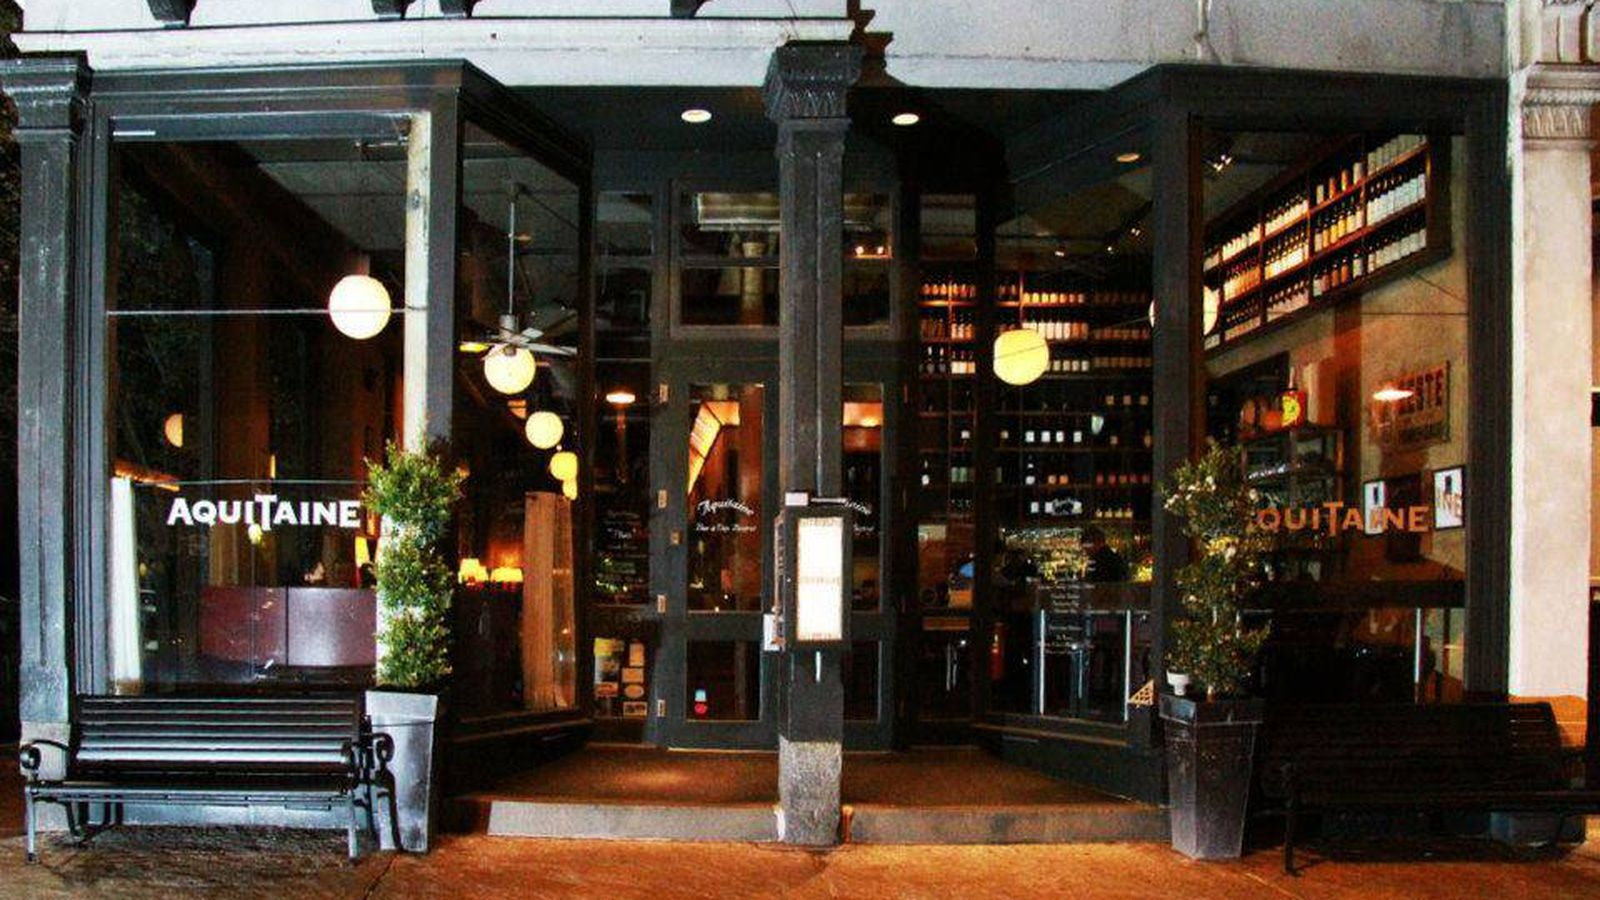 Aquitaine boston will close for renovations eater